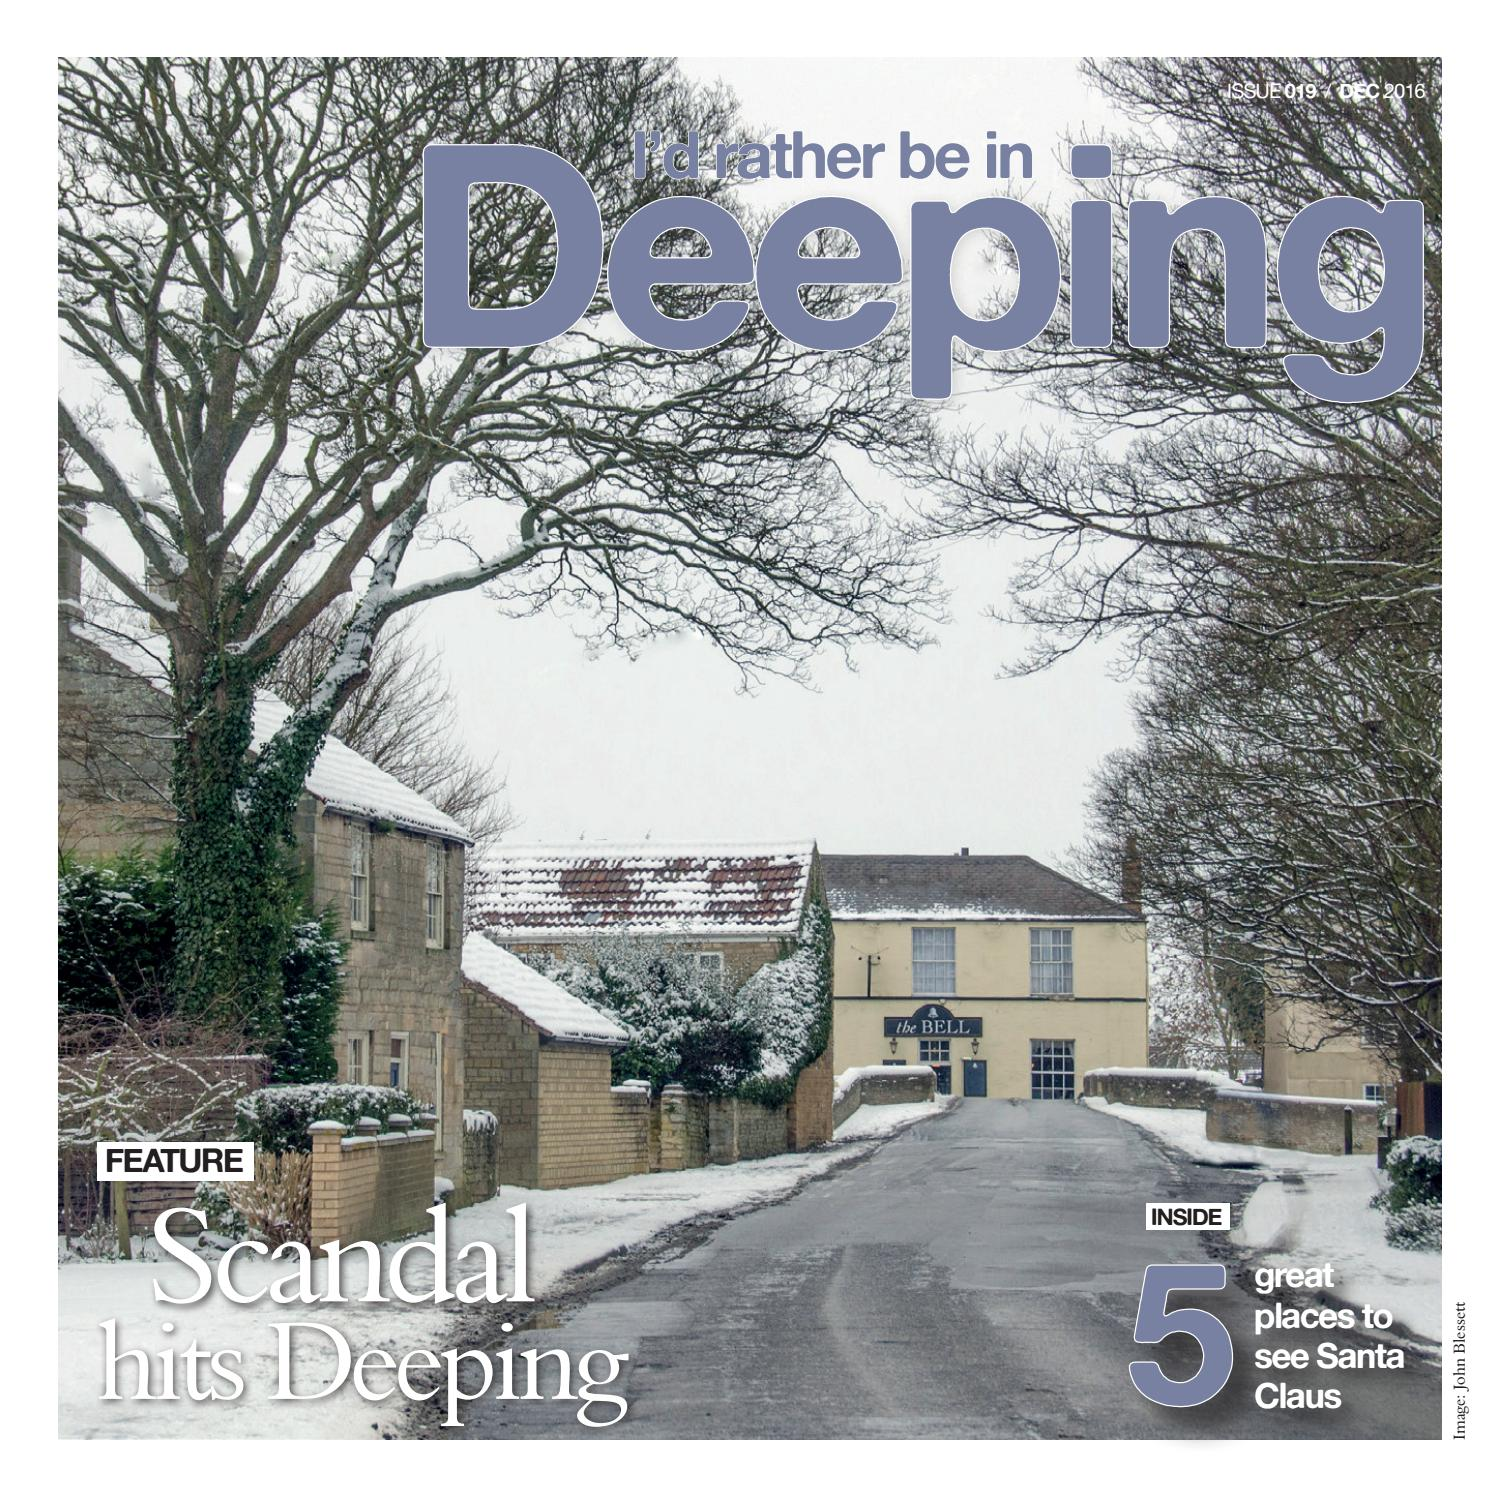 I\'d rather be in deeping dec 16 by zerosix - issuu